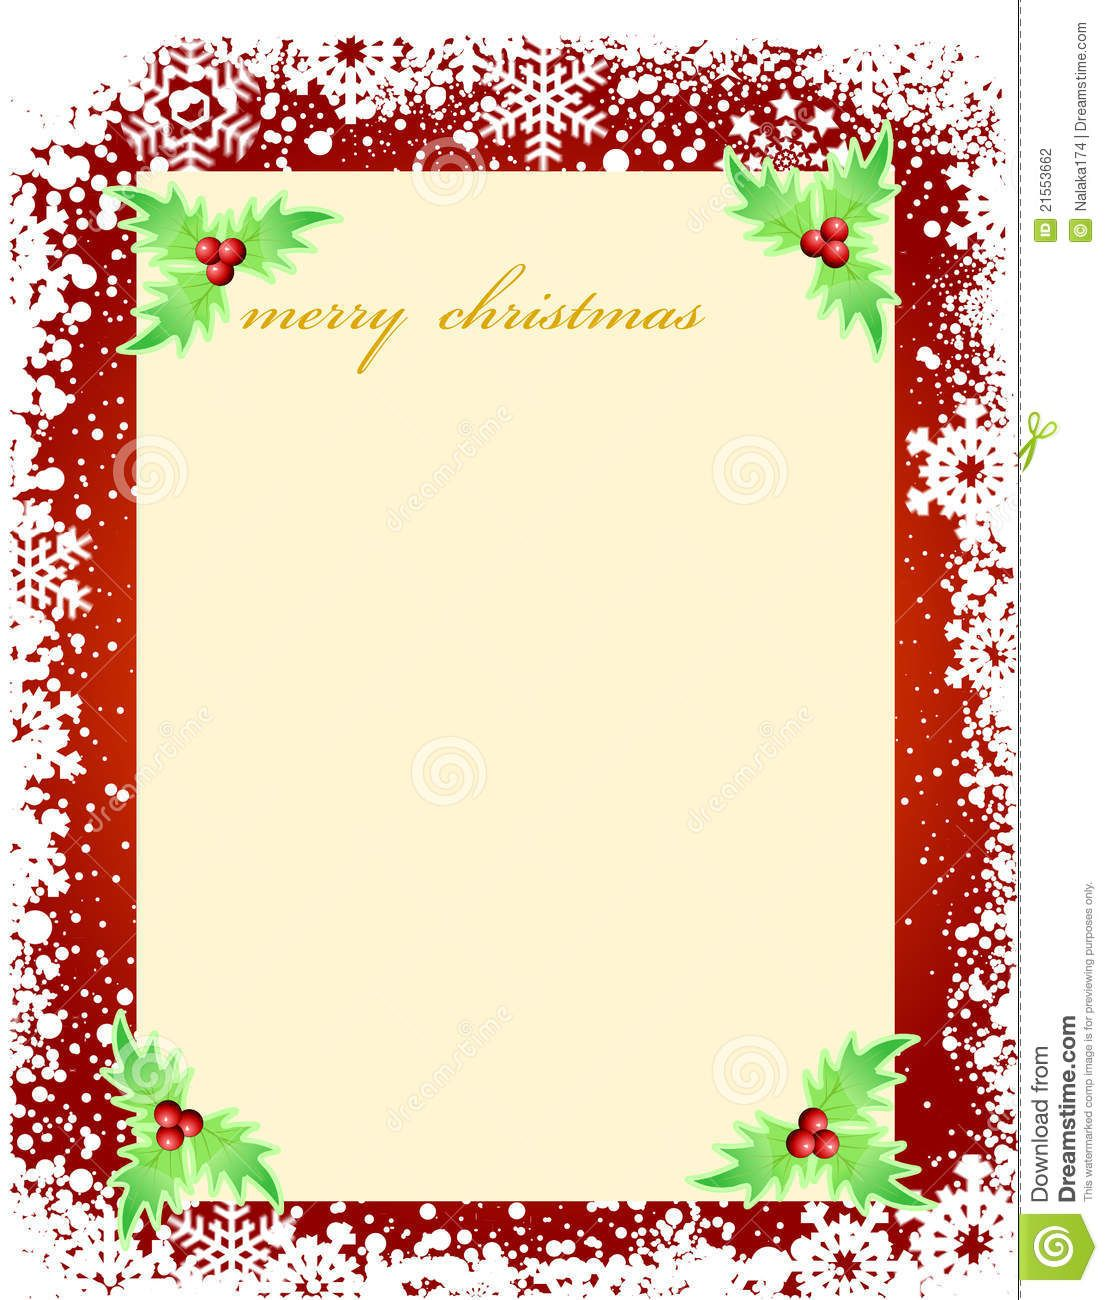 Free Blank Christmas Card Templates Christmas Card Template Christmas Card Templates Free Christmas Card Stock